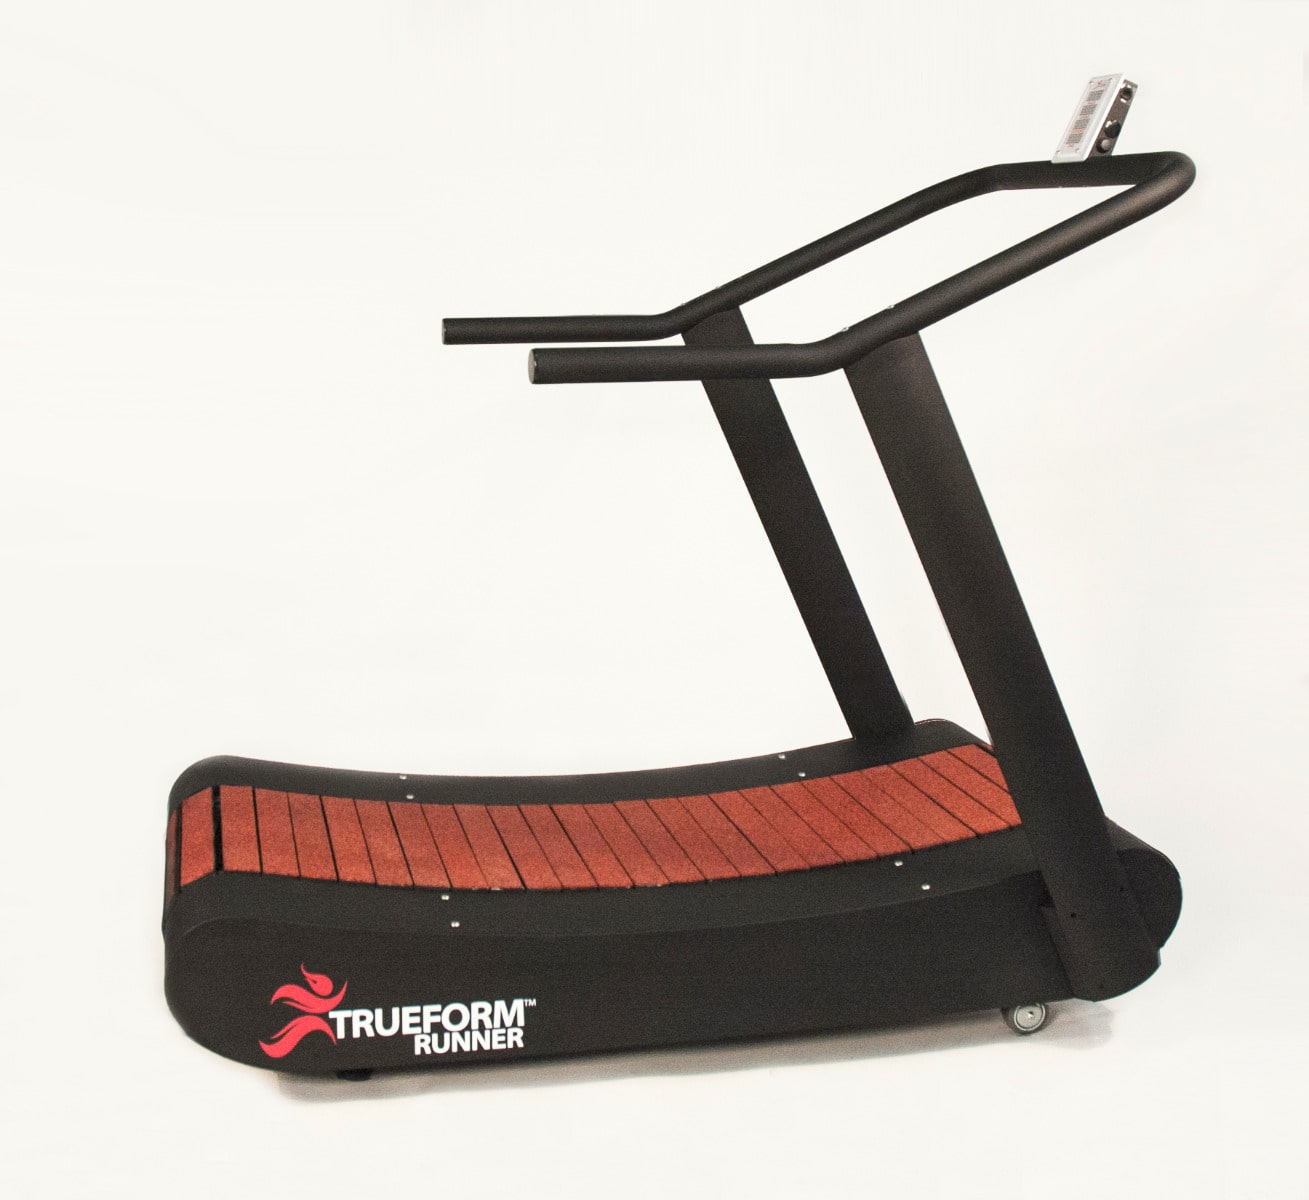 TrueForm Runner Enduro 3.0 Treadmill with Artificial Running Track Surface